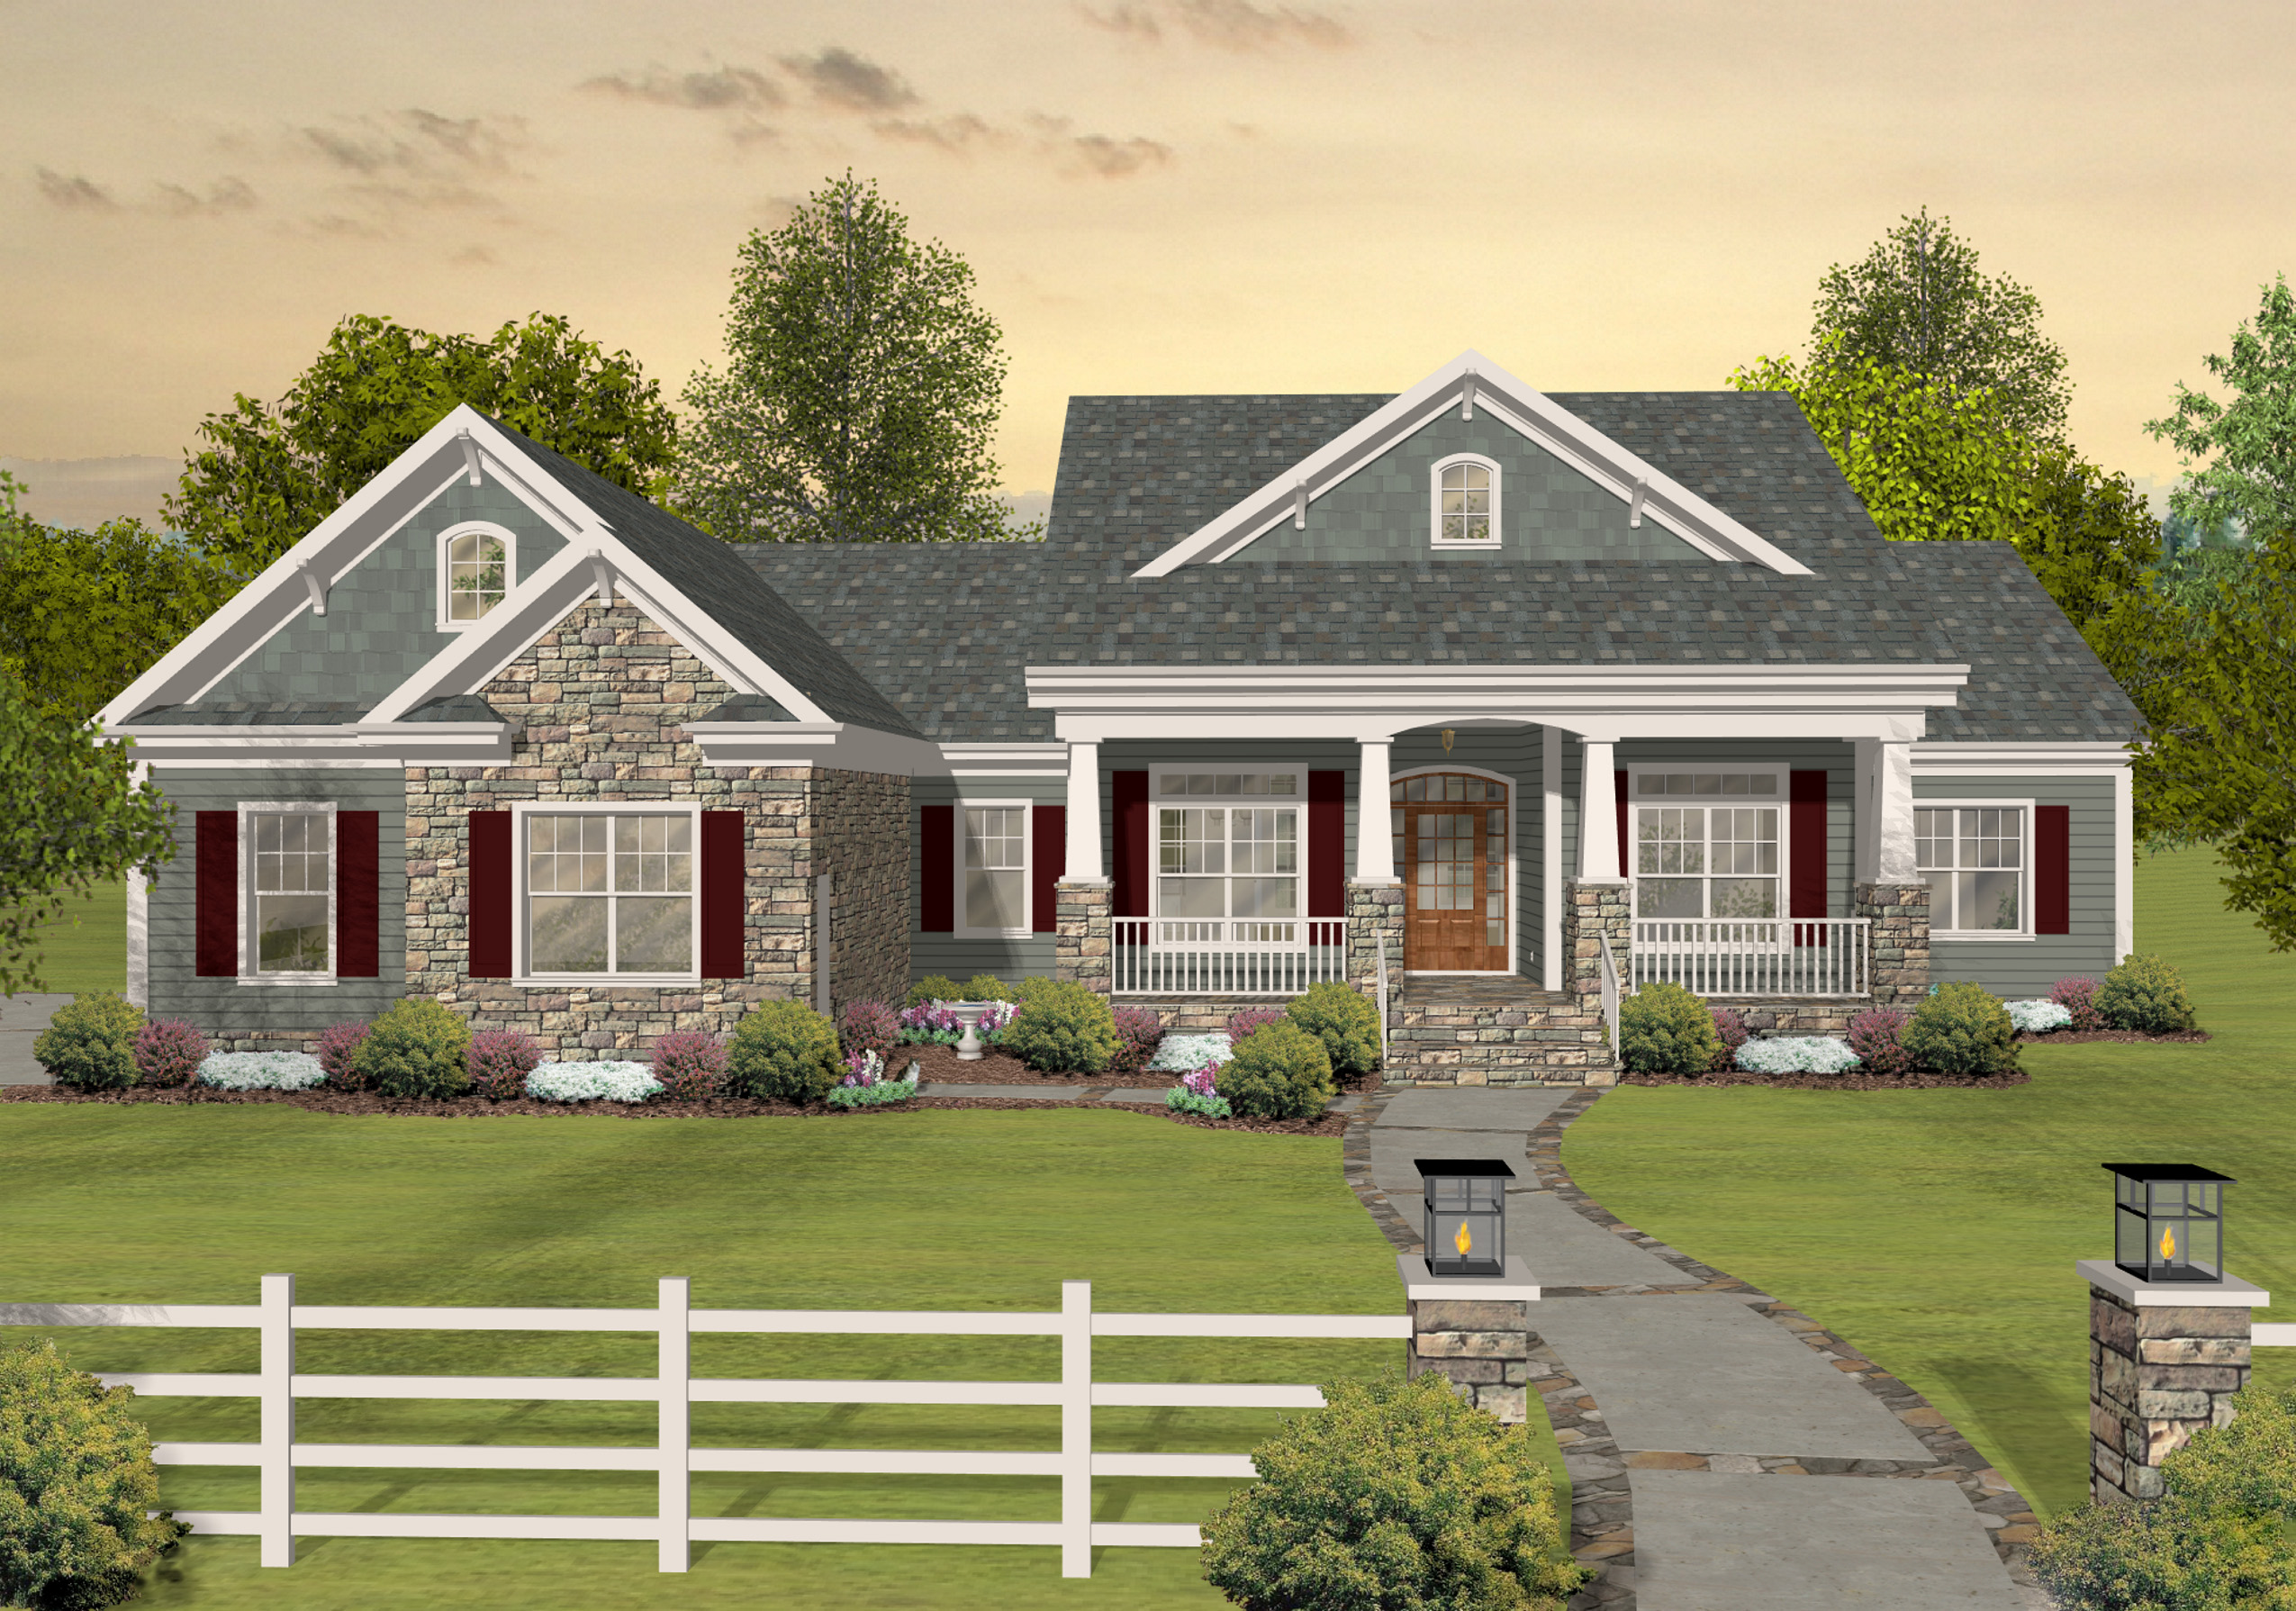 One story exterior house plans - Flexible Ranch With Loaded Optional Lower Level 20078ga Architectural Designs House Plans